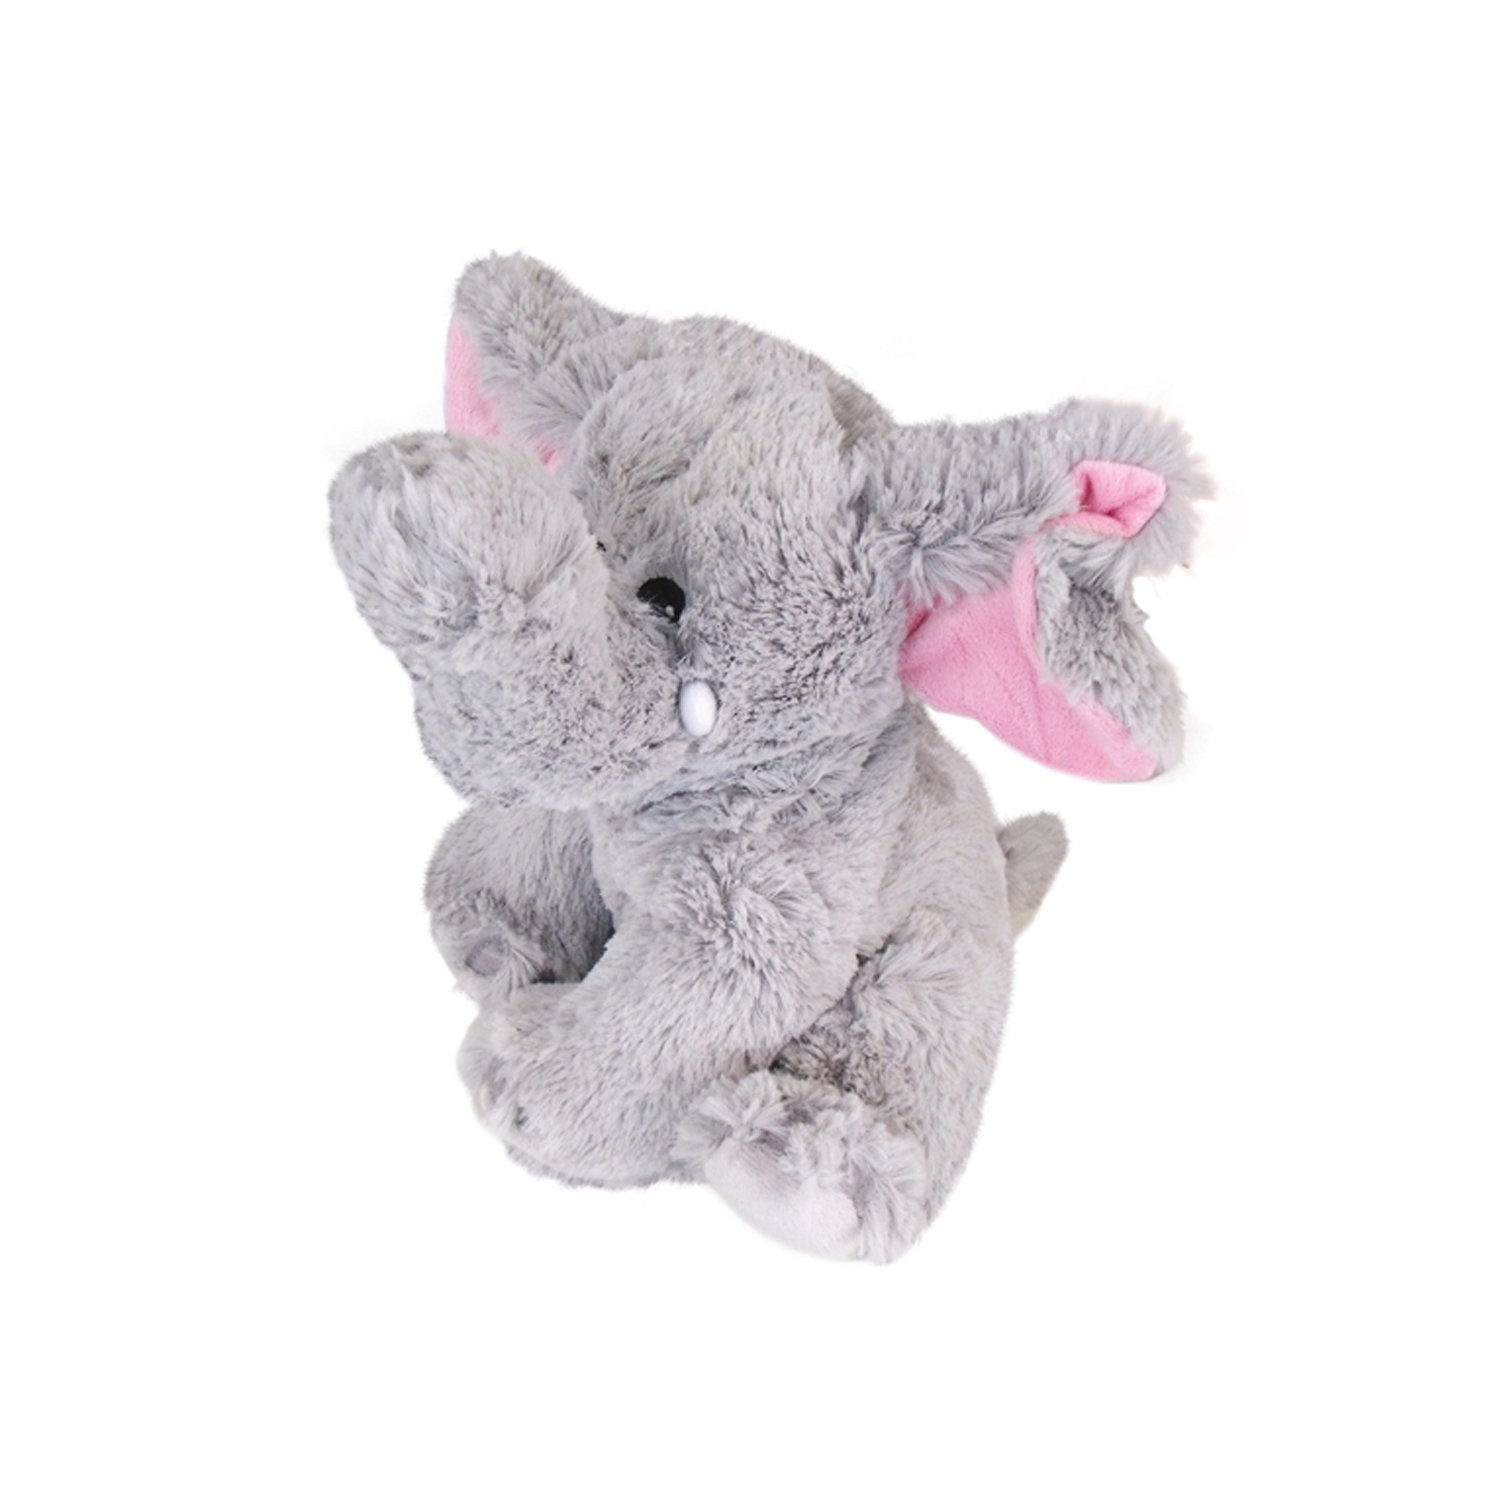 Warmies Peluche Termico - Elefante Intelex 66